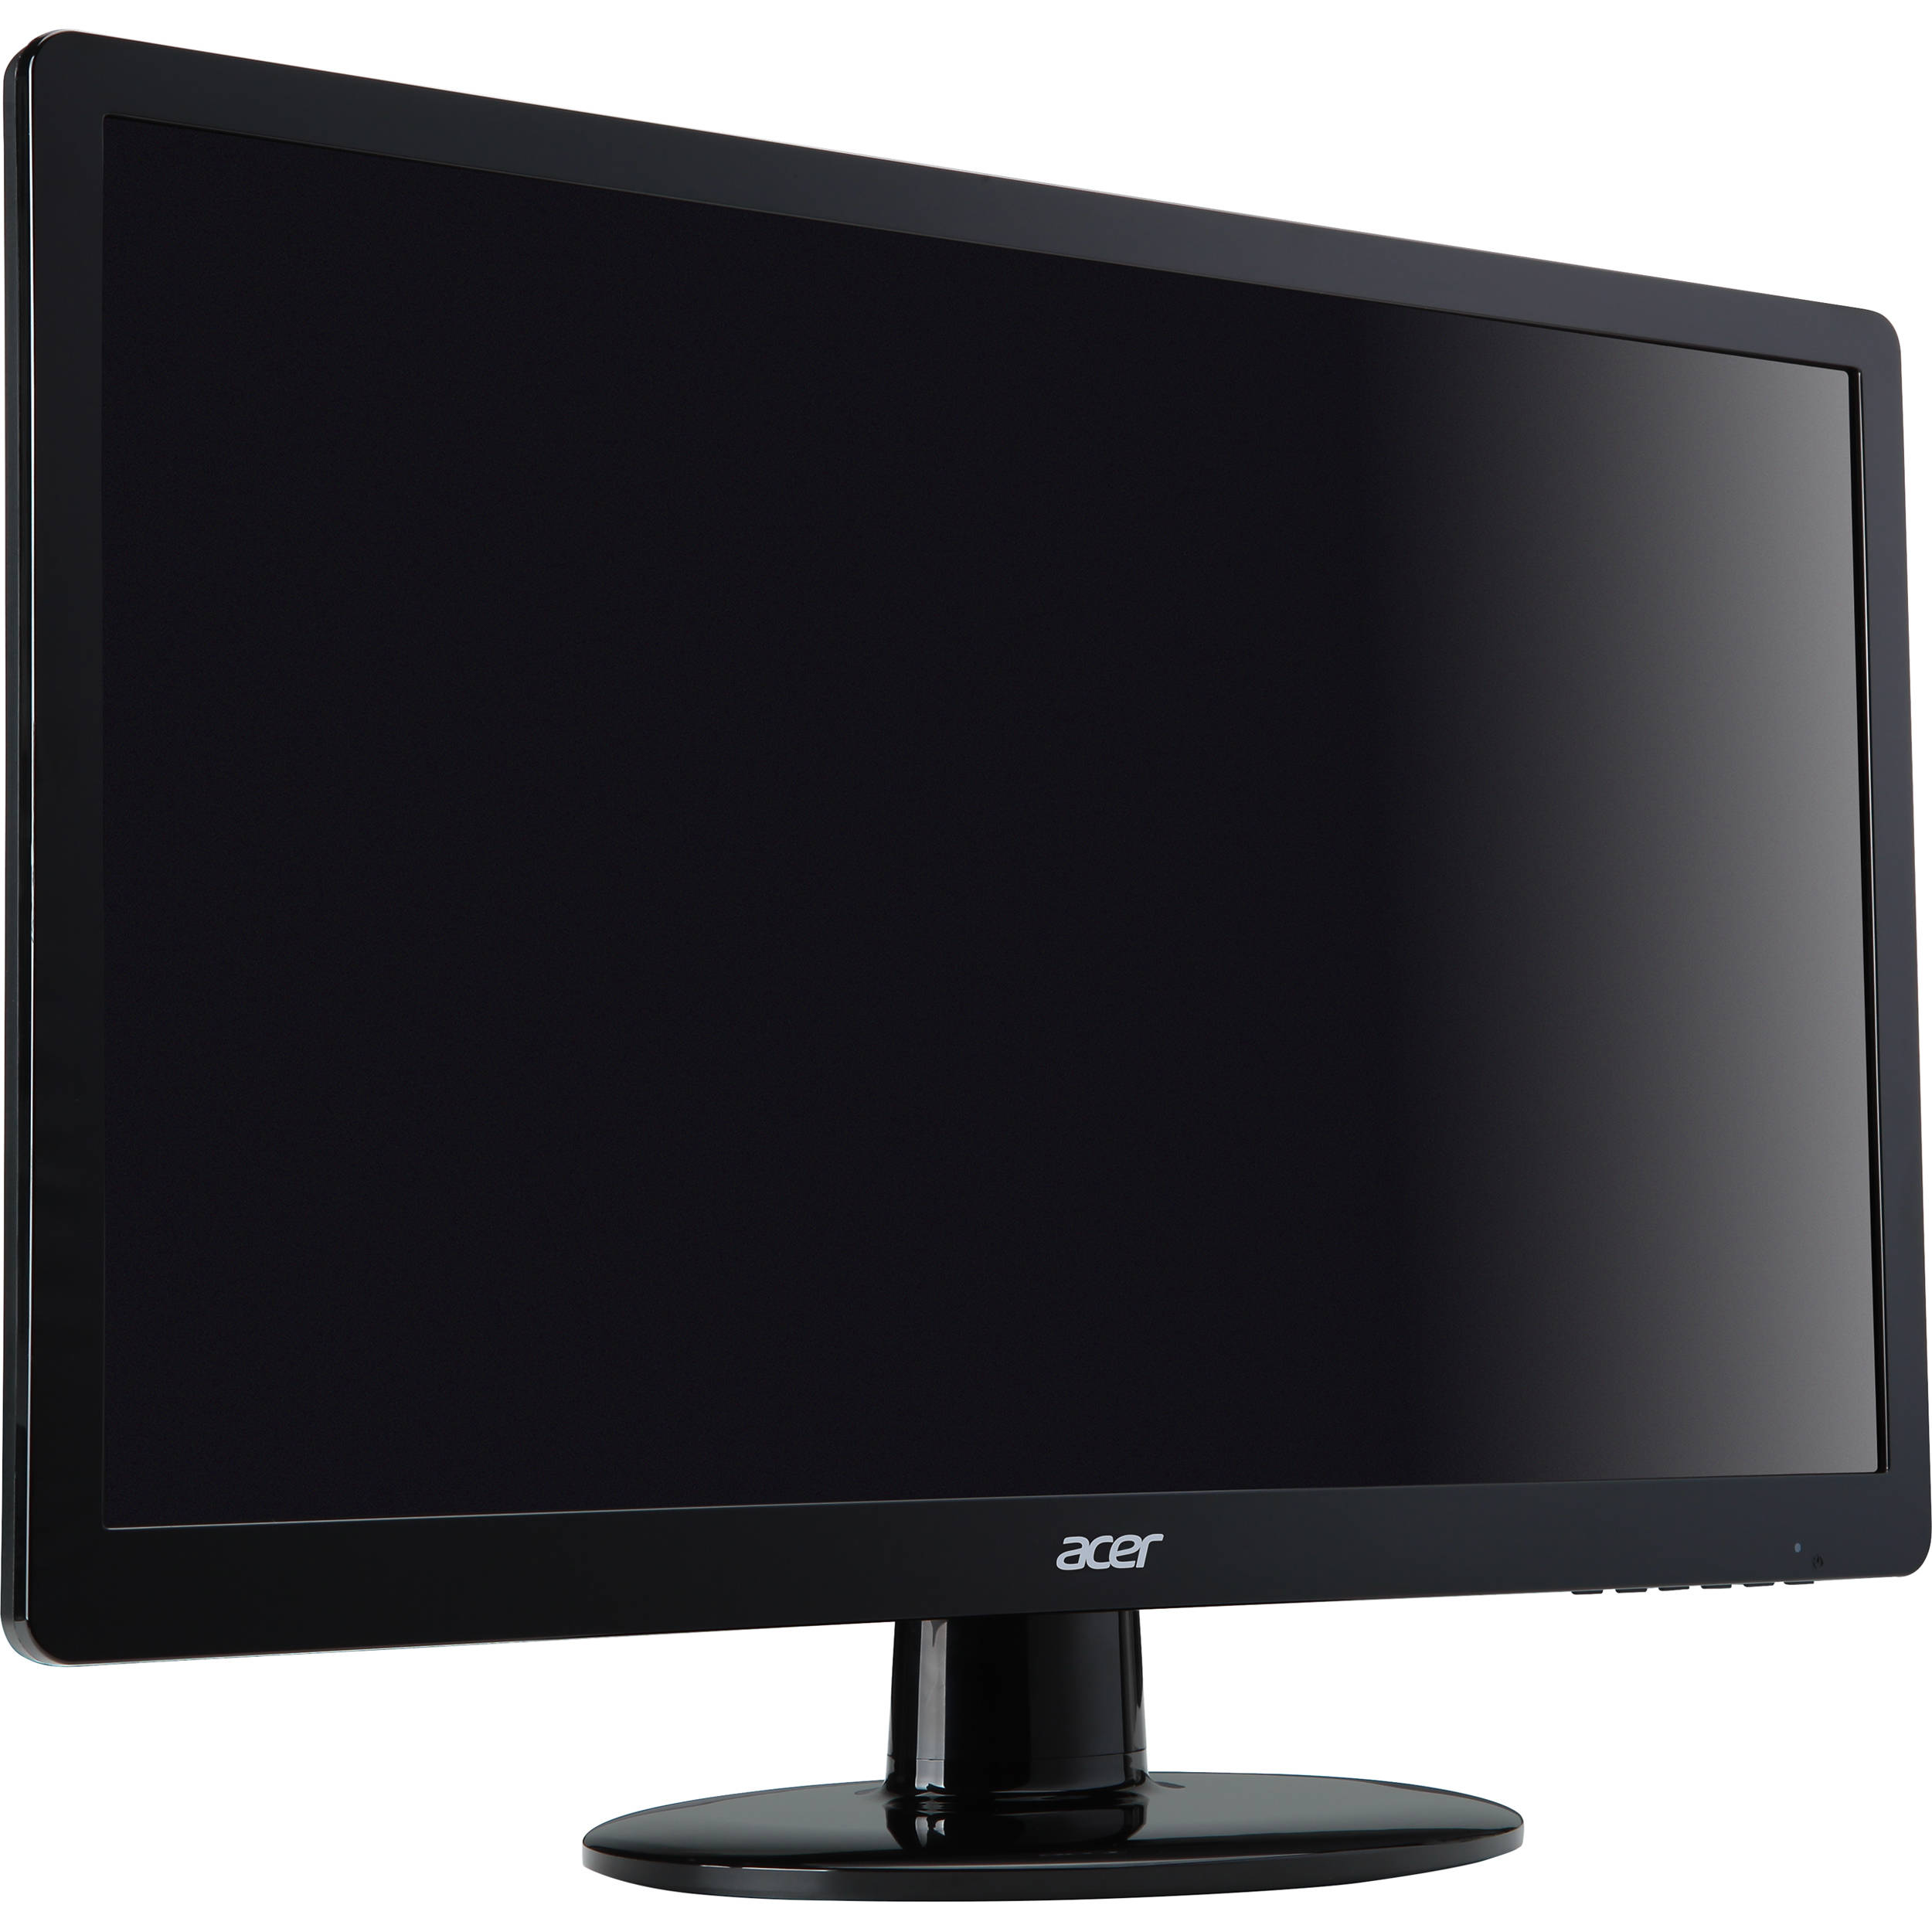 ACER S211HL MONITOR DOWNLOAD DRIVERS